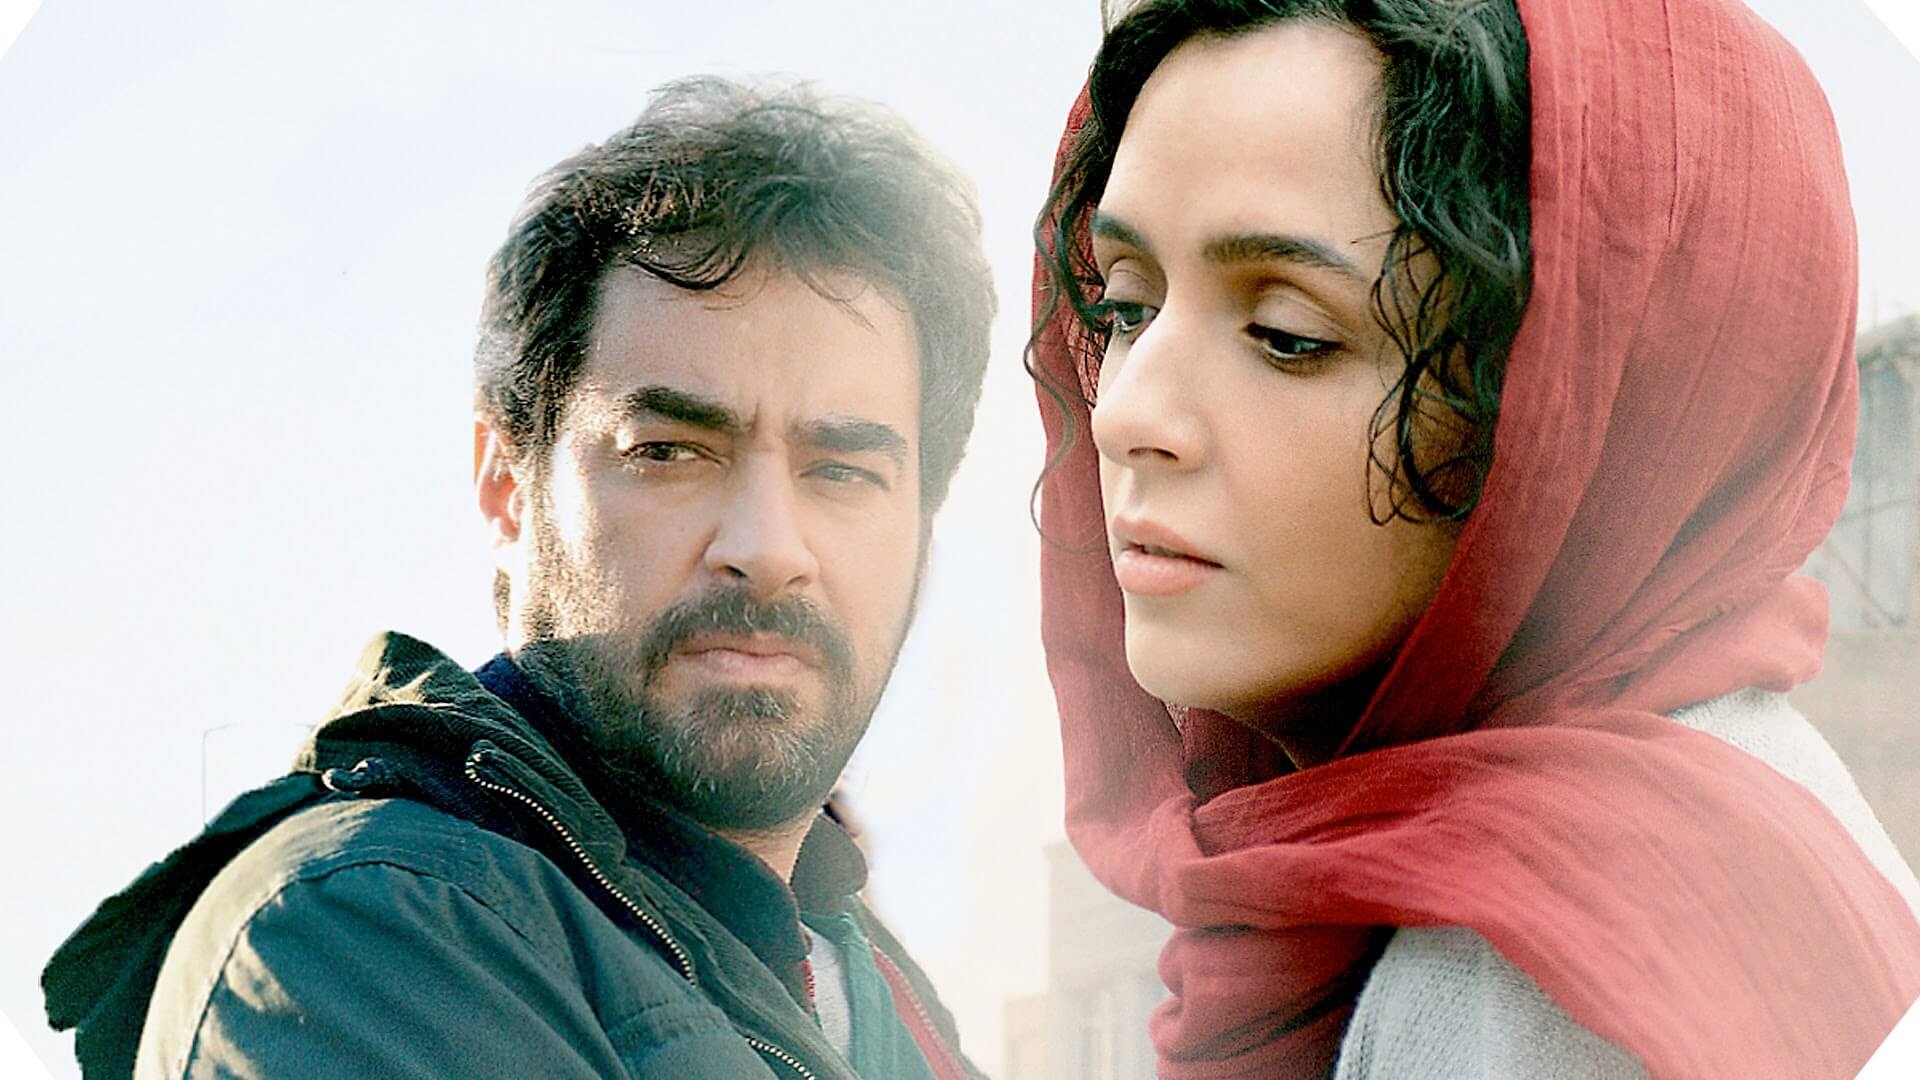 MAMI PRESENTS A SPECIAL SCREENING OF THE ACADEMY AWARD WINNING FILM THE SALESMAN